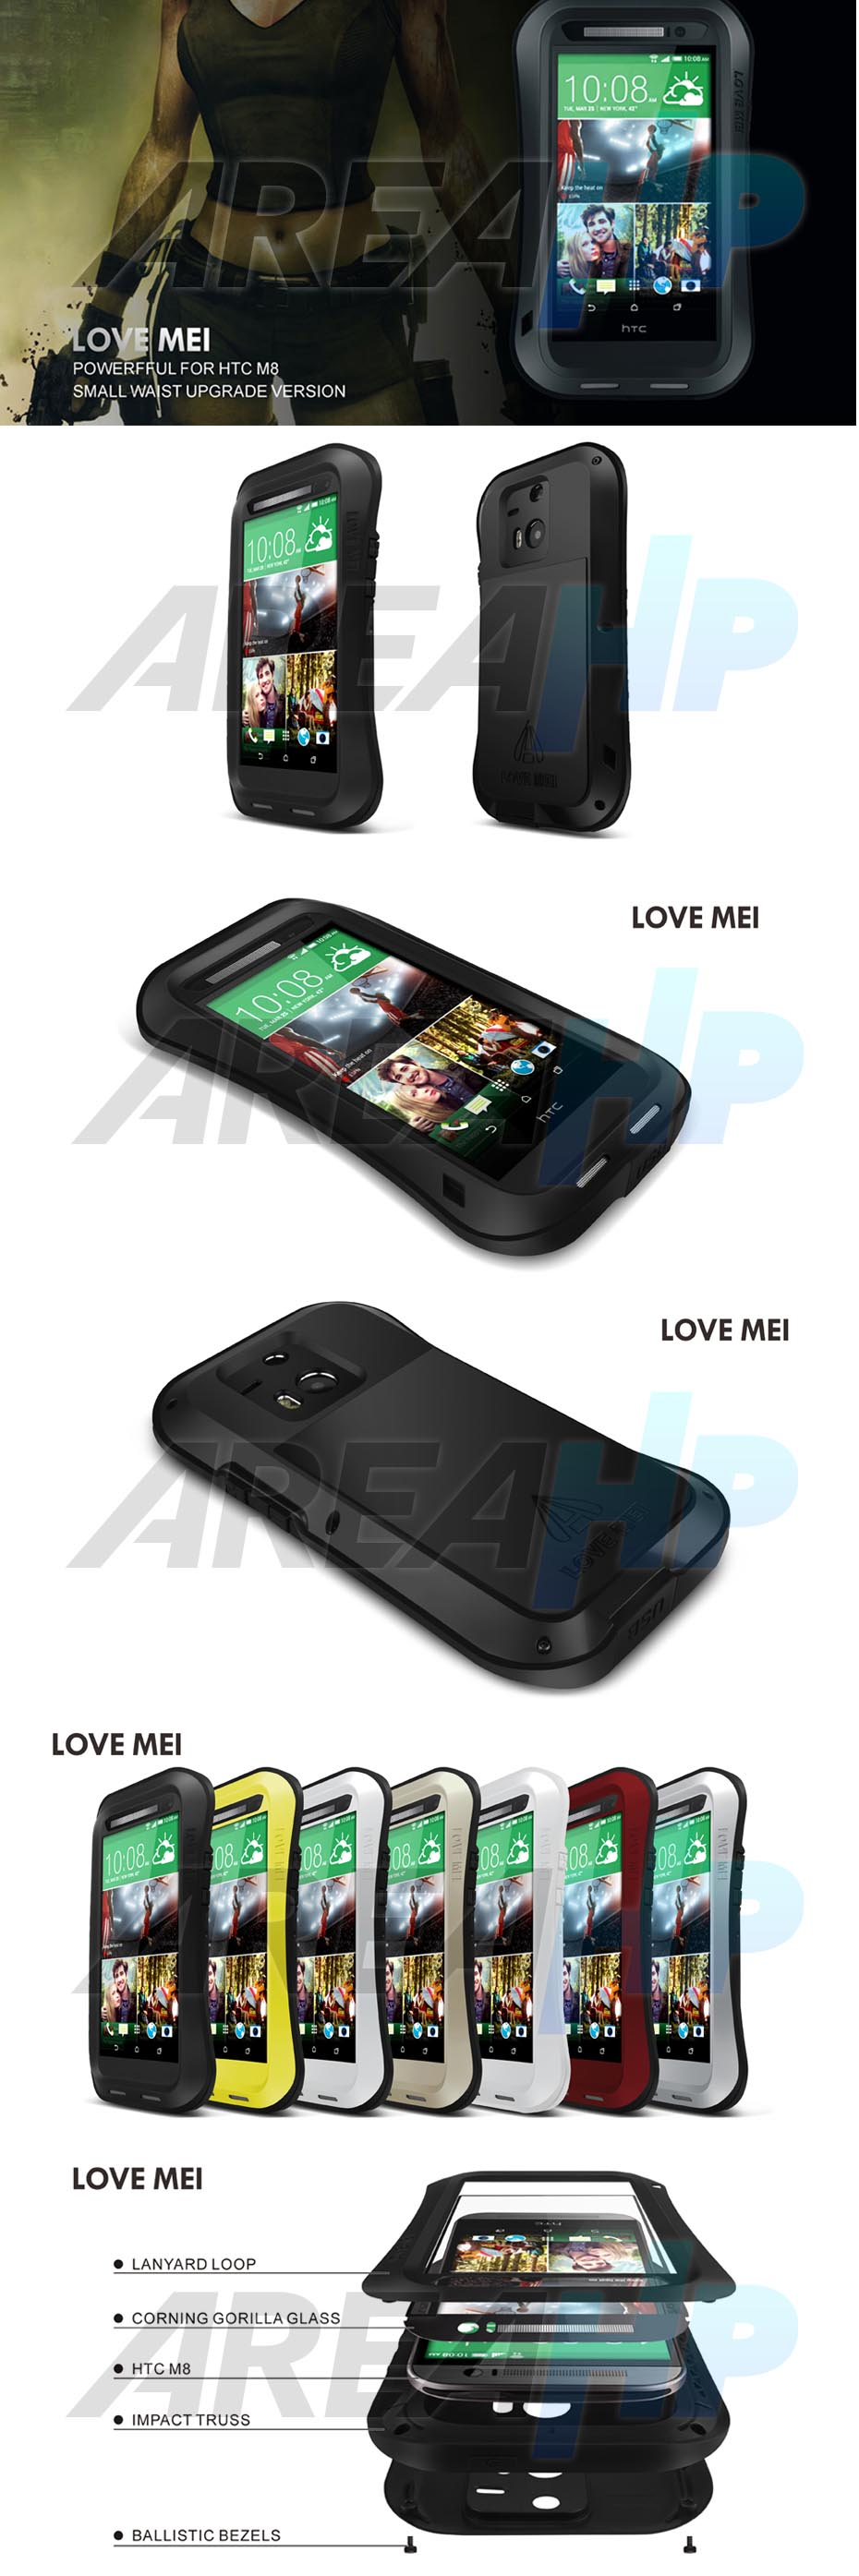 Love Mei Powerful Small Waist Upgrade Version for HTC One M8 Overview